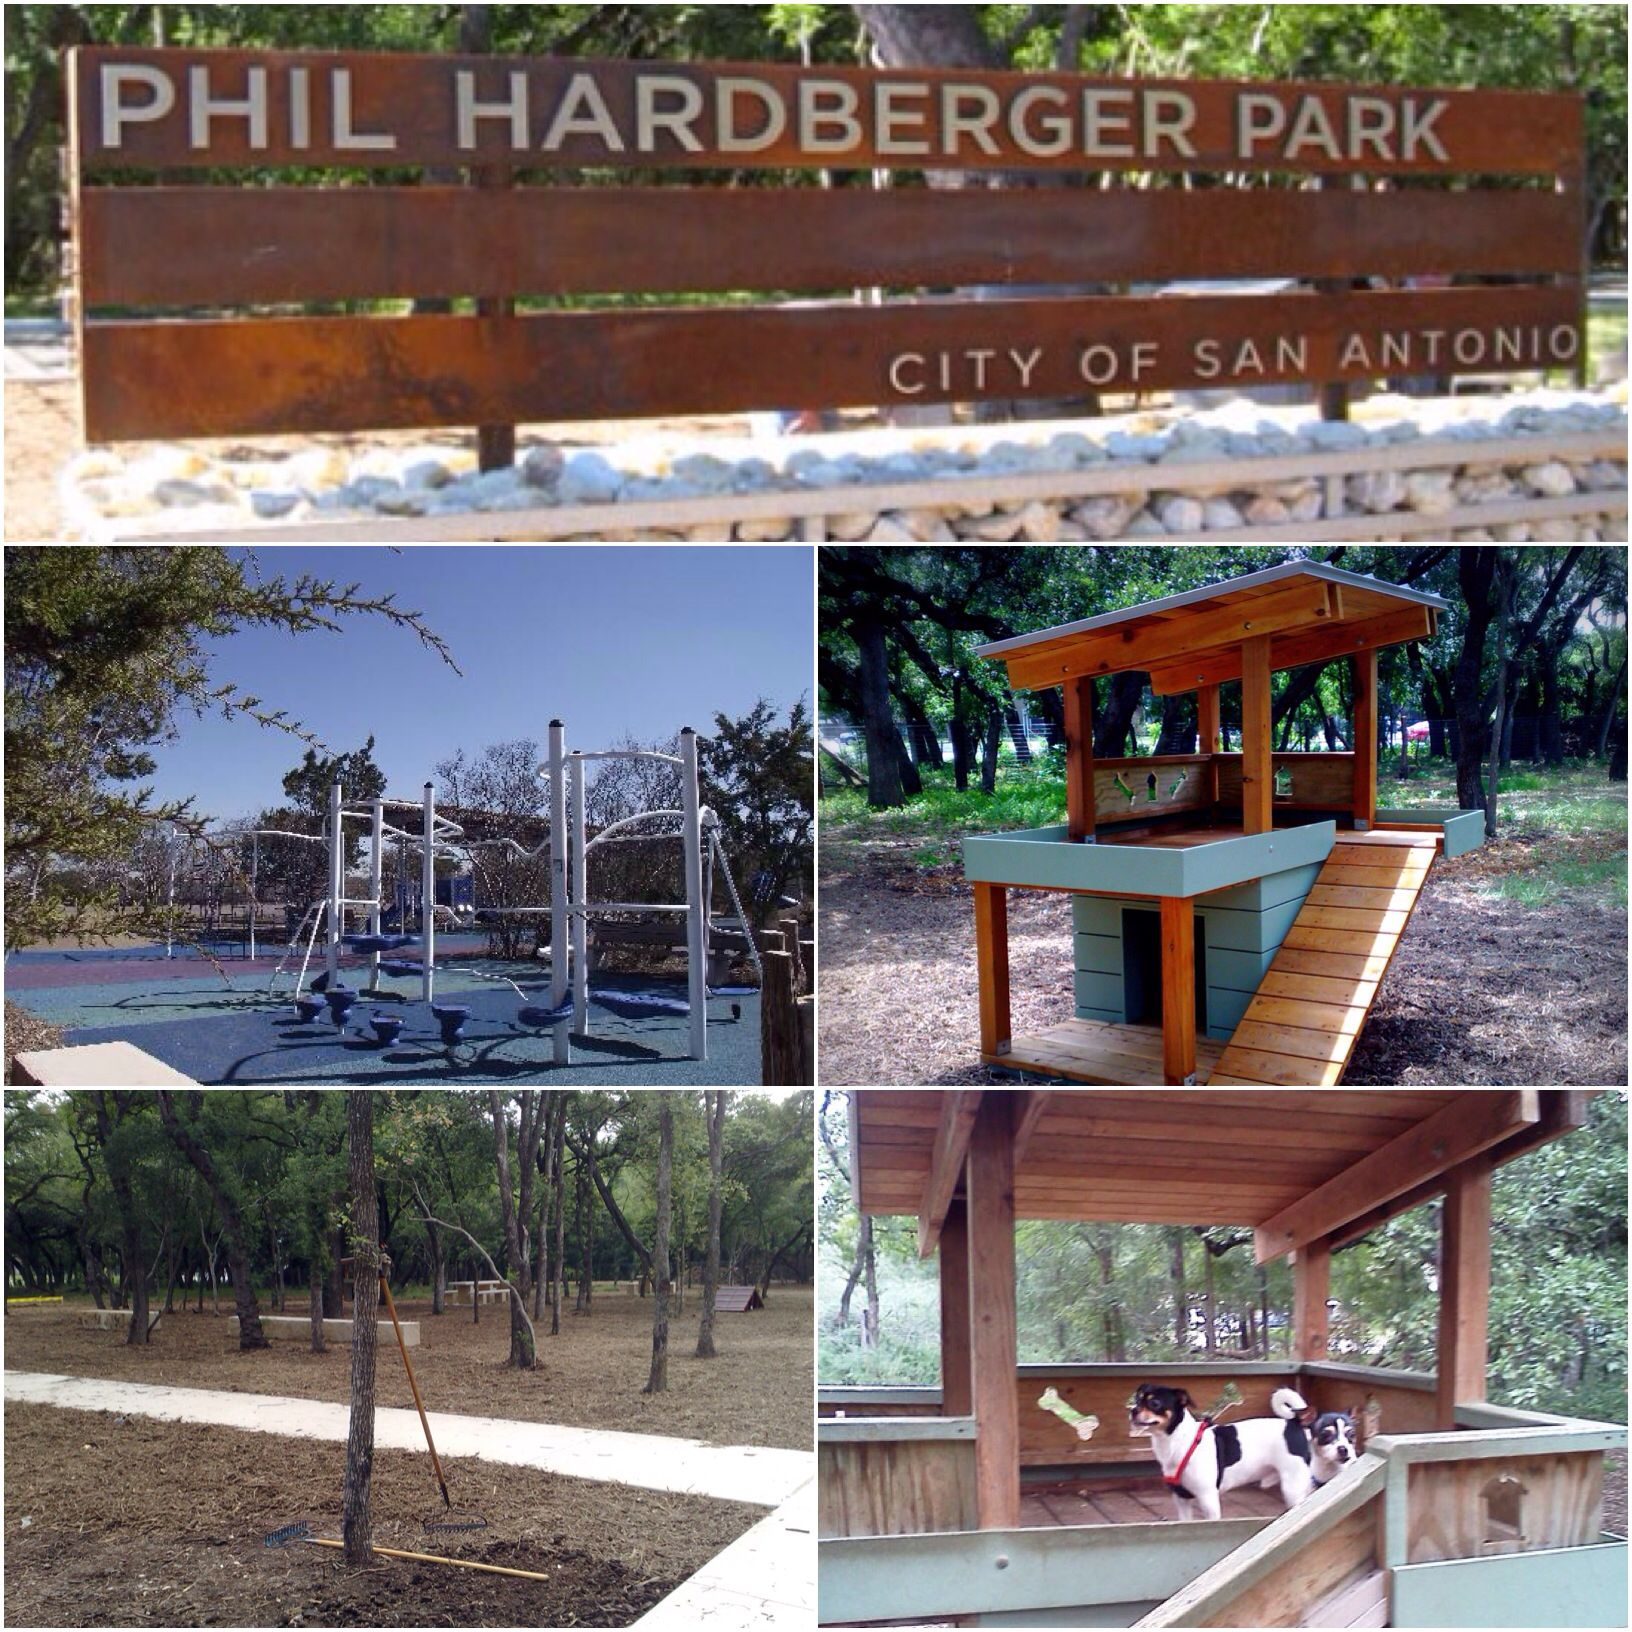 Phil Hardberger Park. Family friendly park that includes